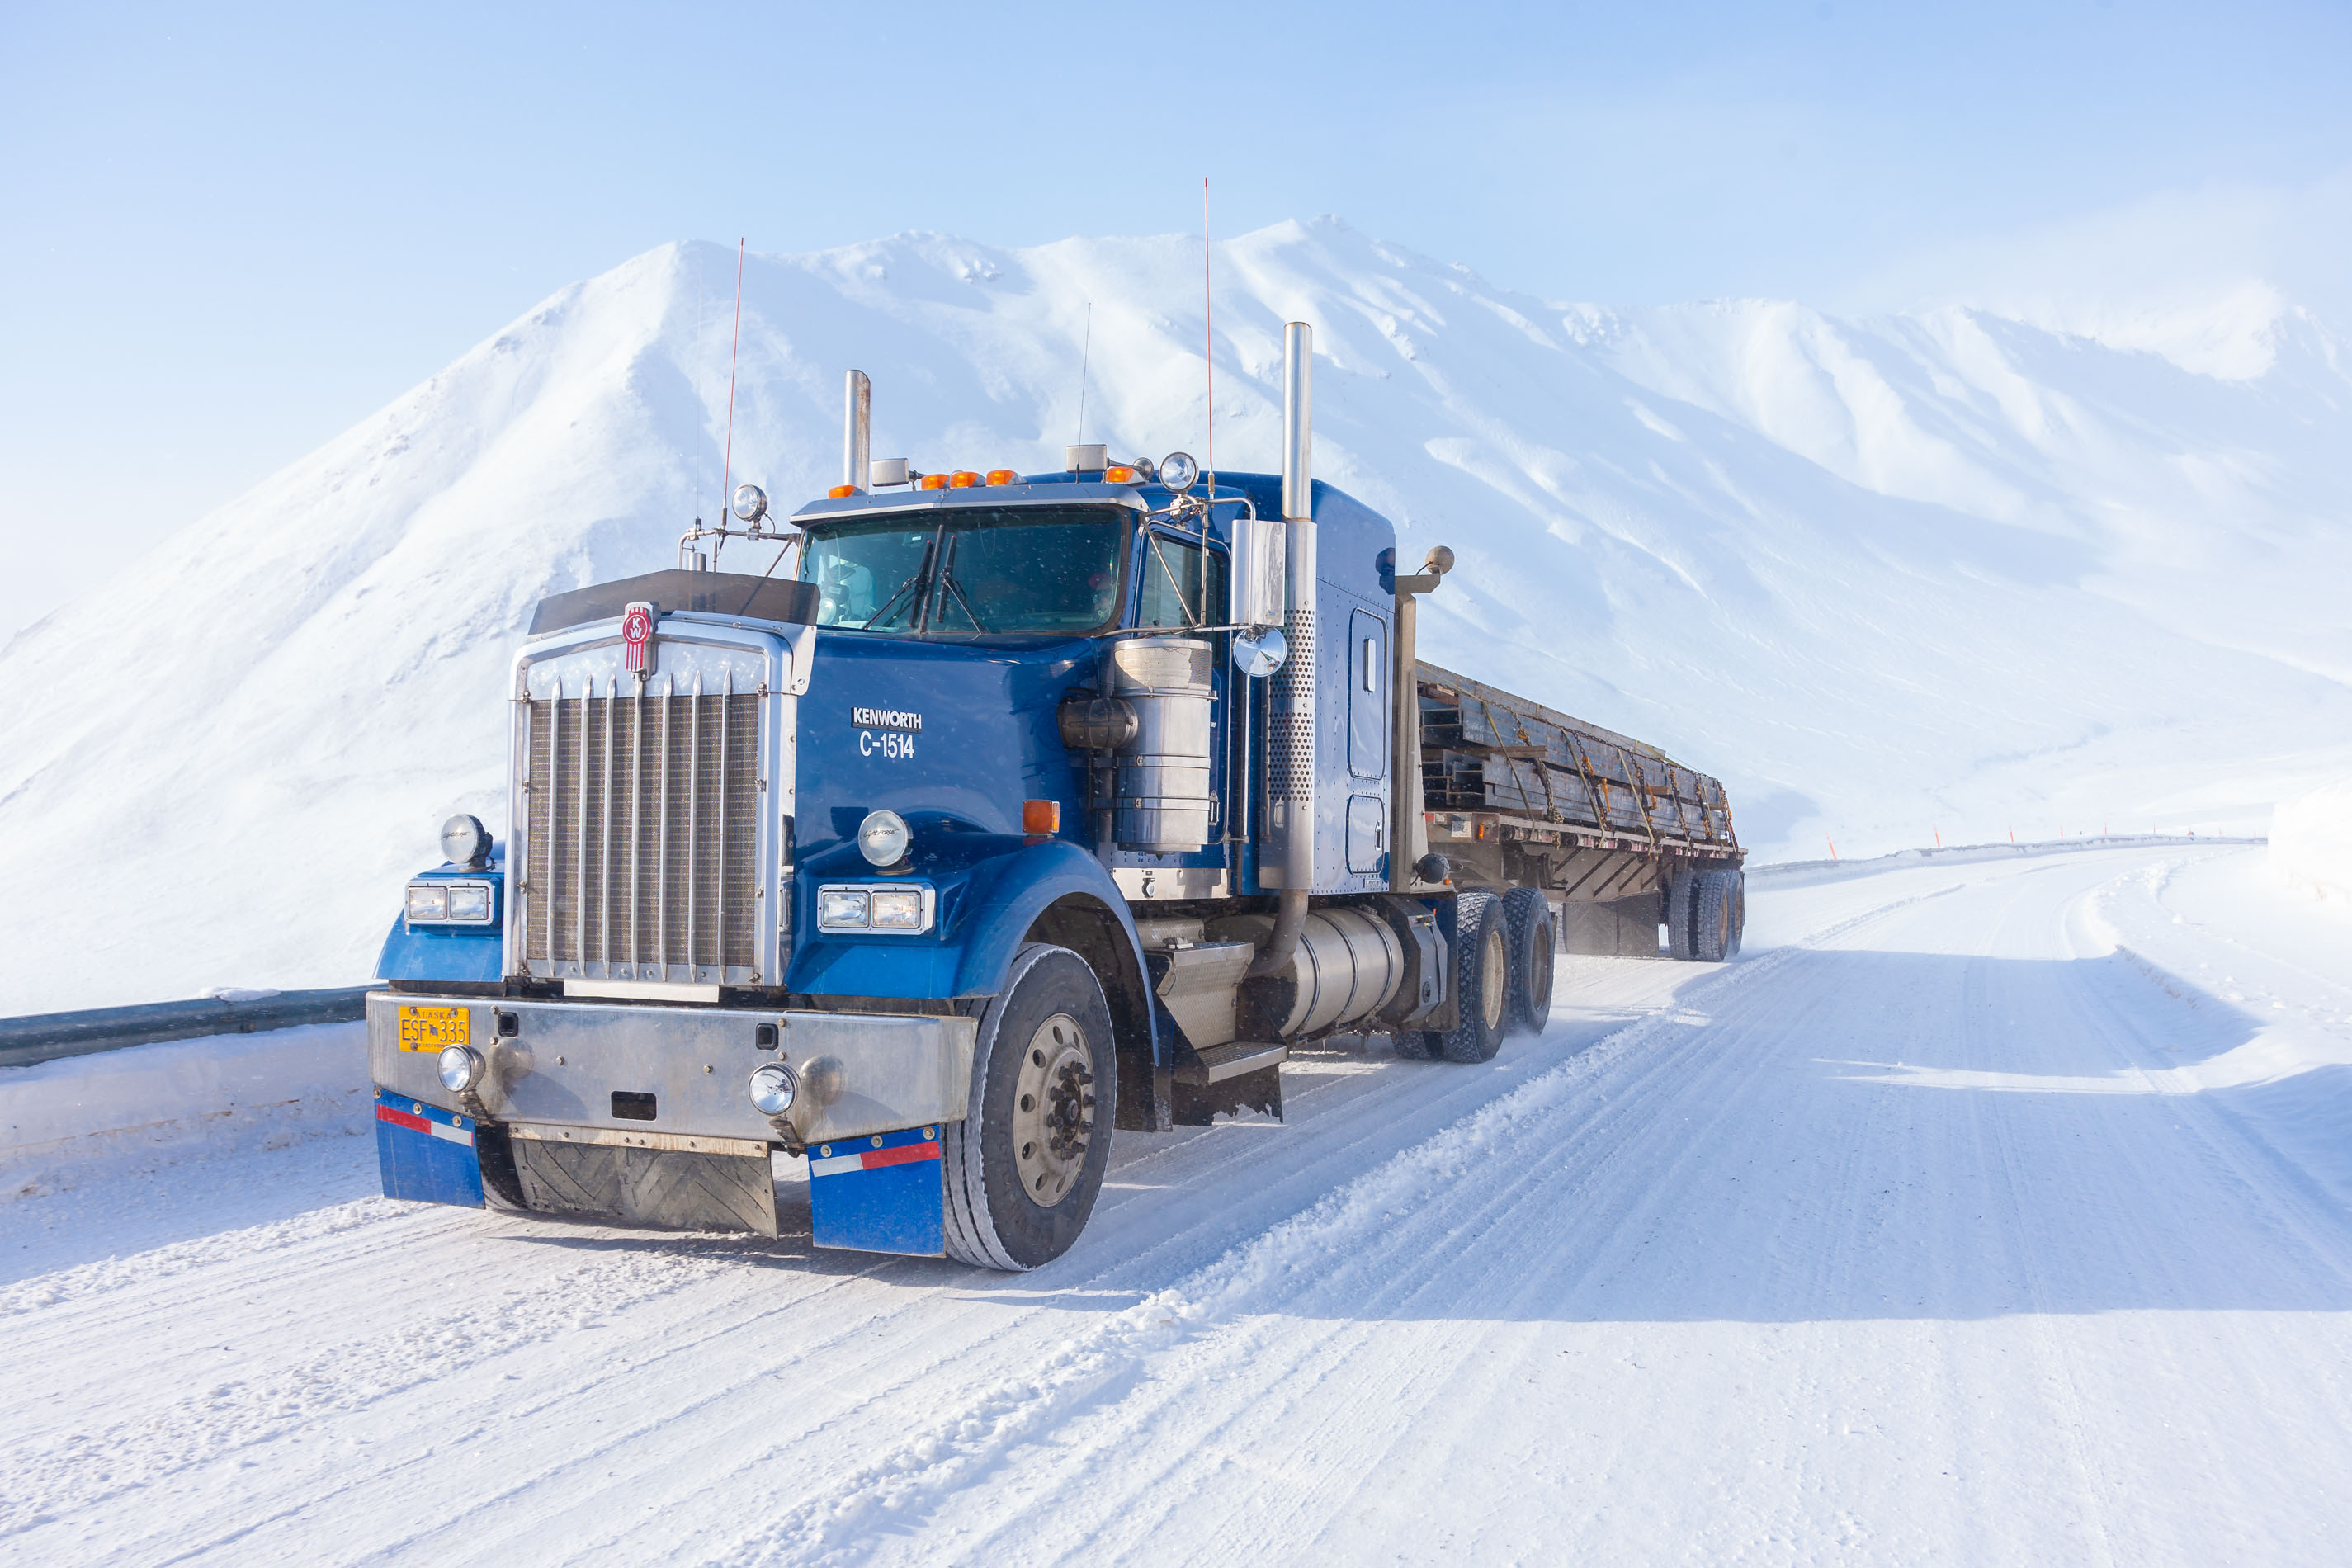 History Channel /Ice Road Truckers